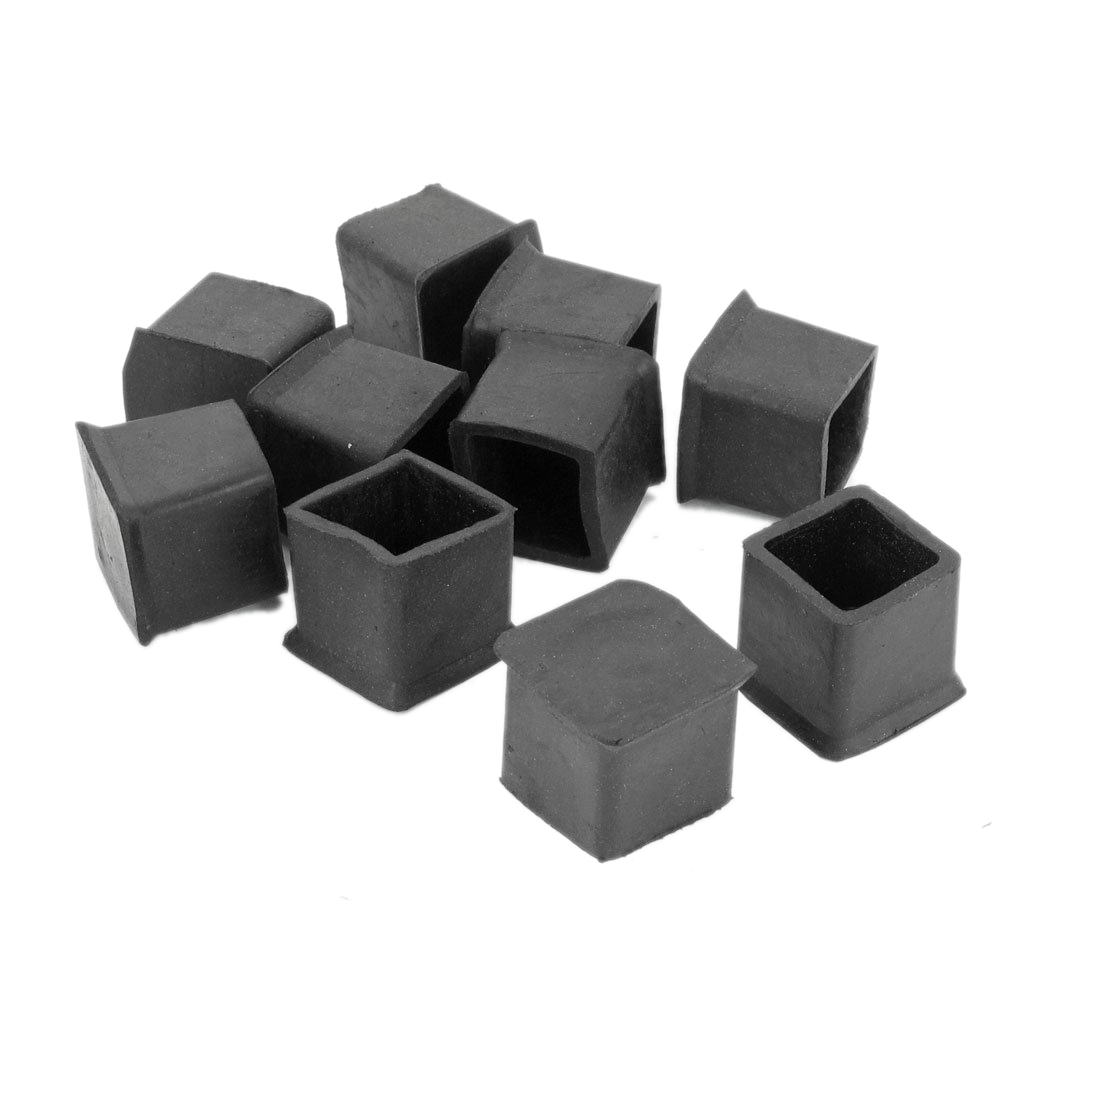 10 Pcs Rubber 25mm X 25mm Furniture Chair Legs Covers Protectors Wd Ebay